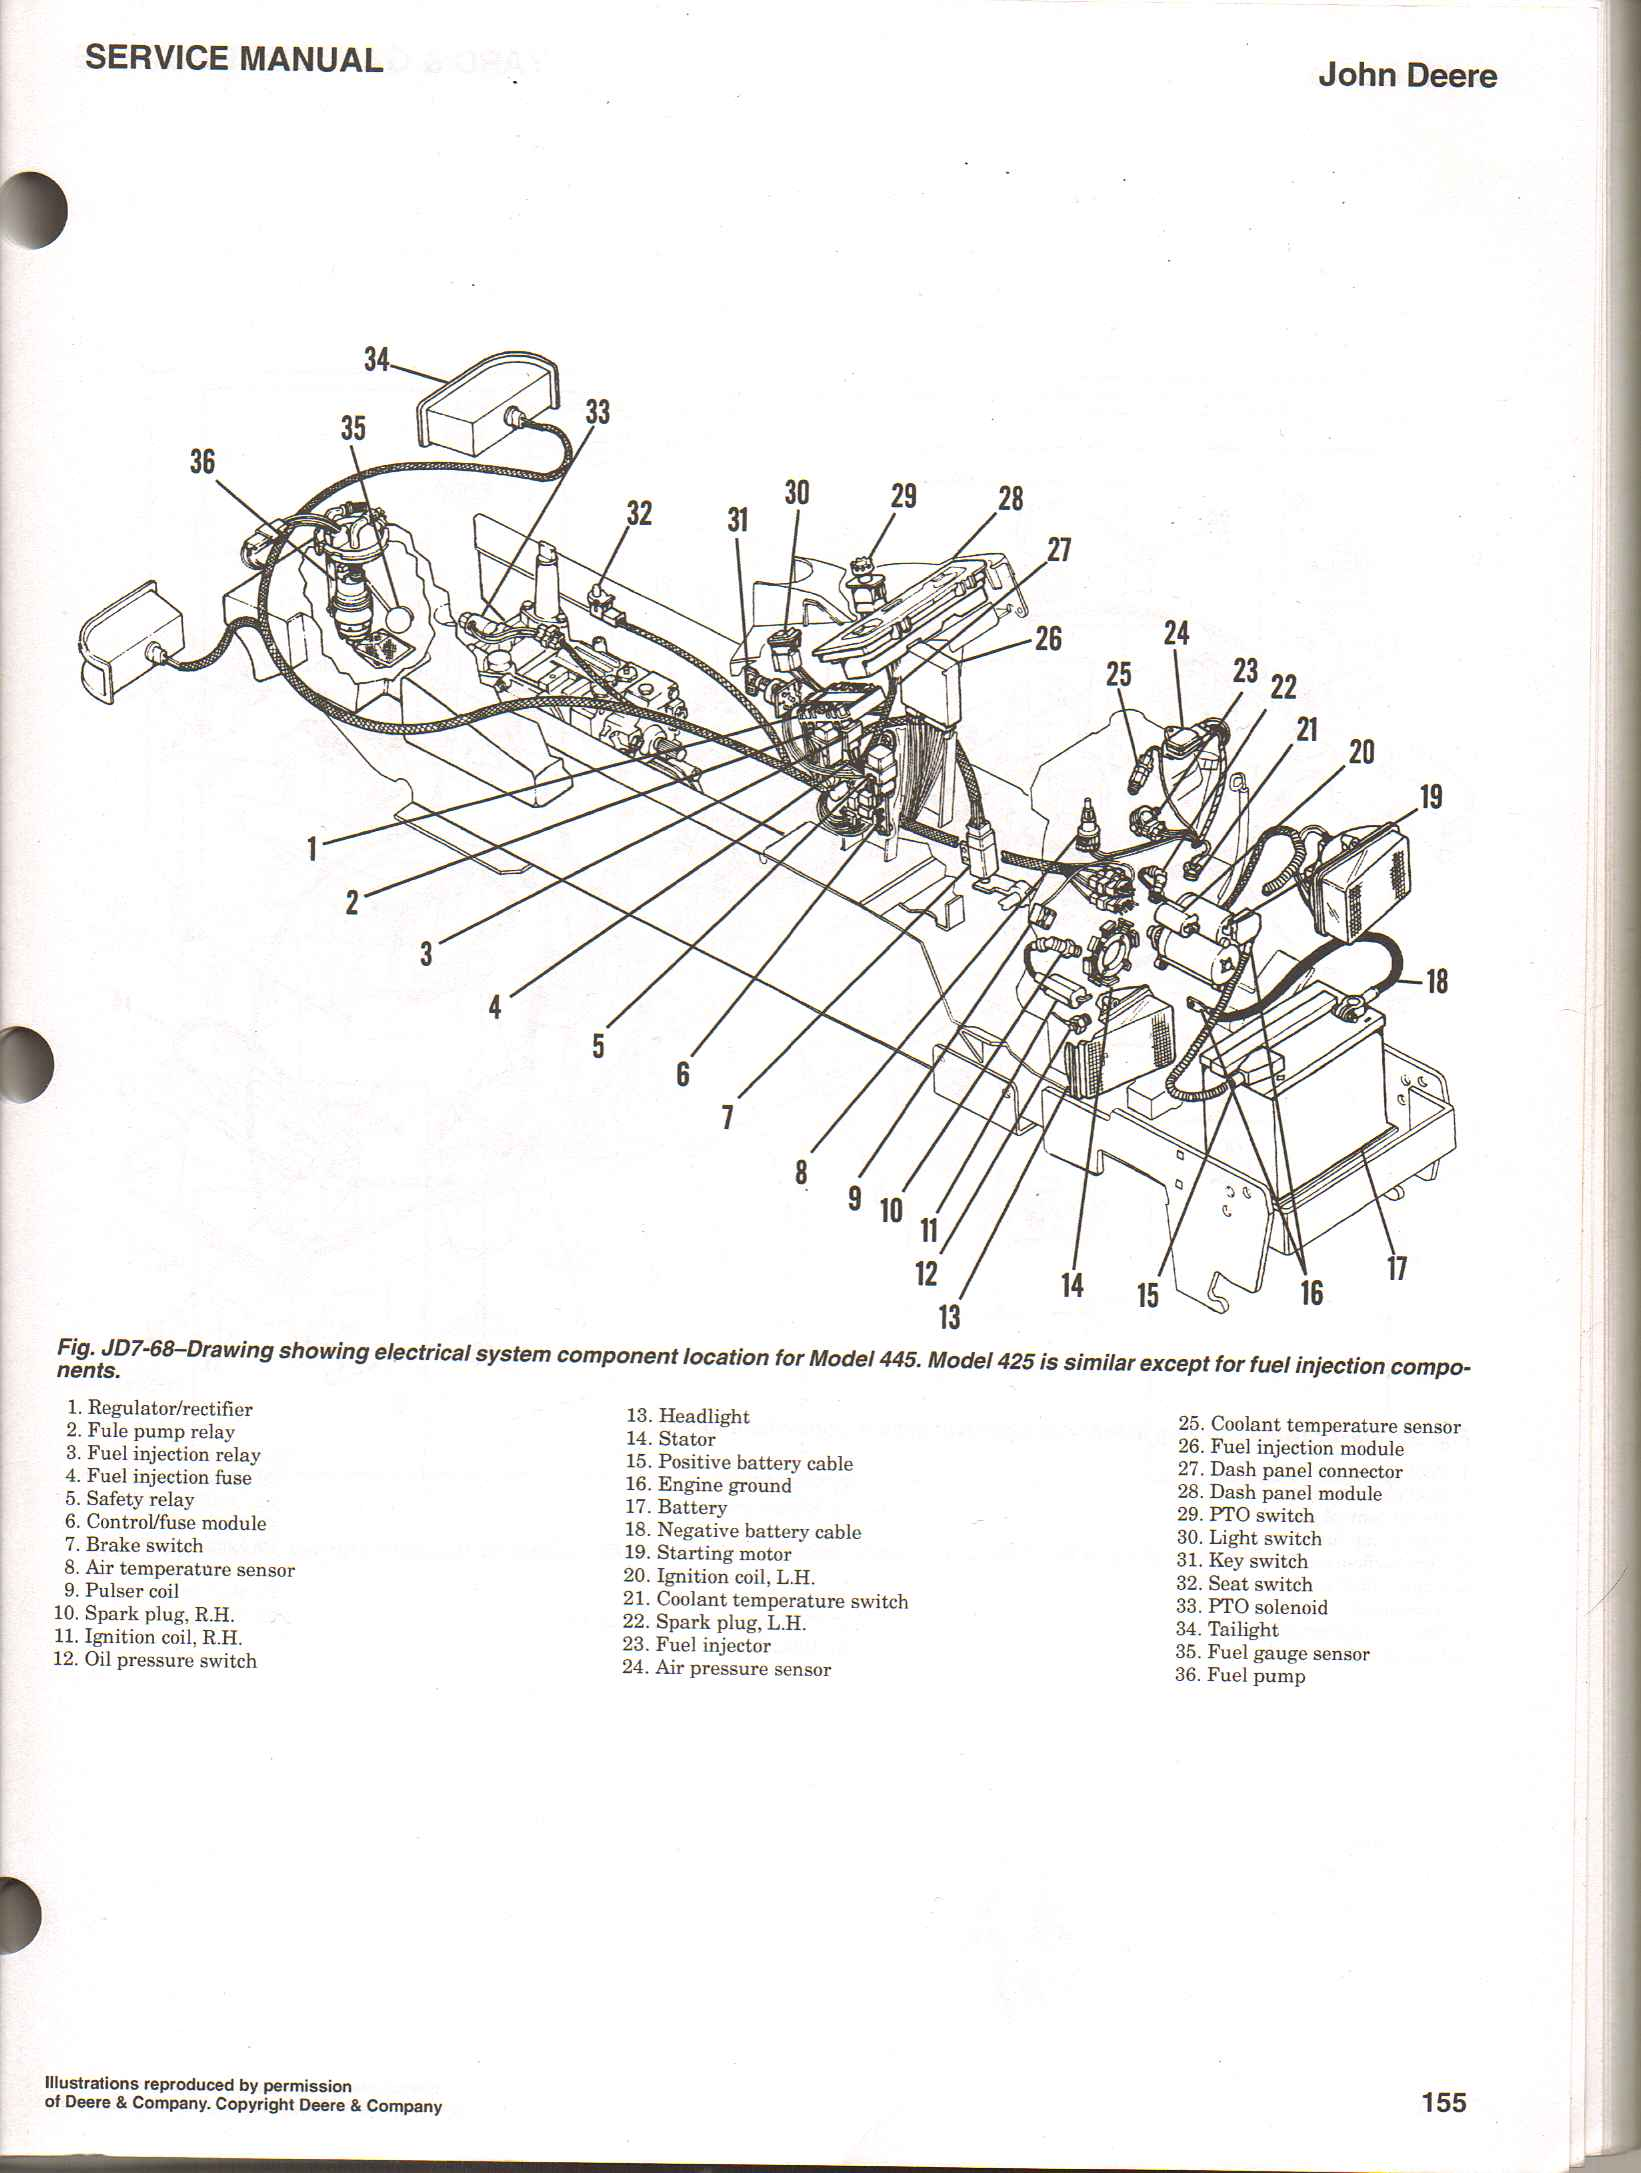 John Deere 445 Parts Manual Topsimages